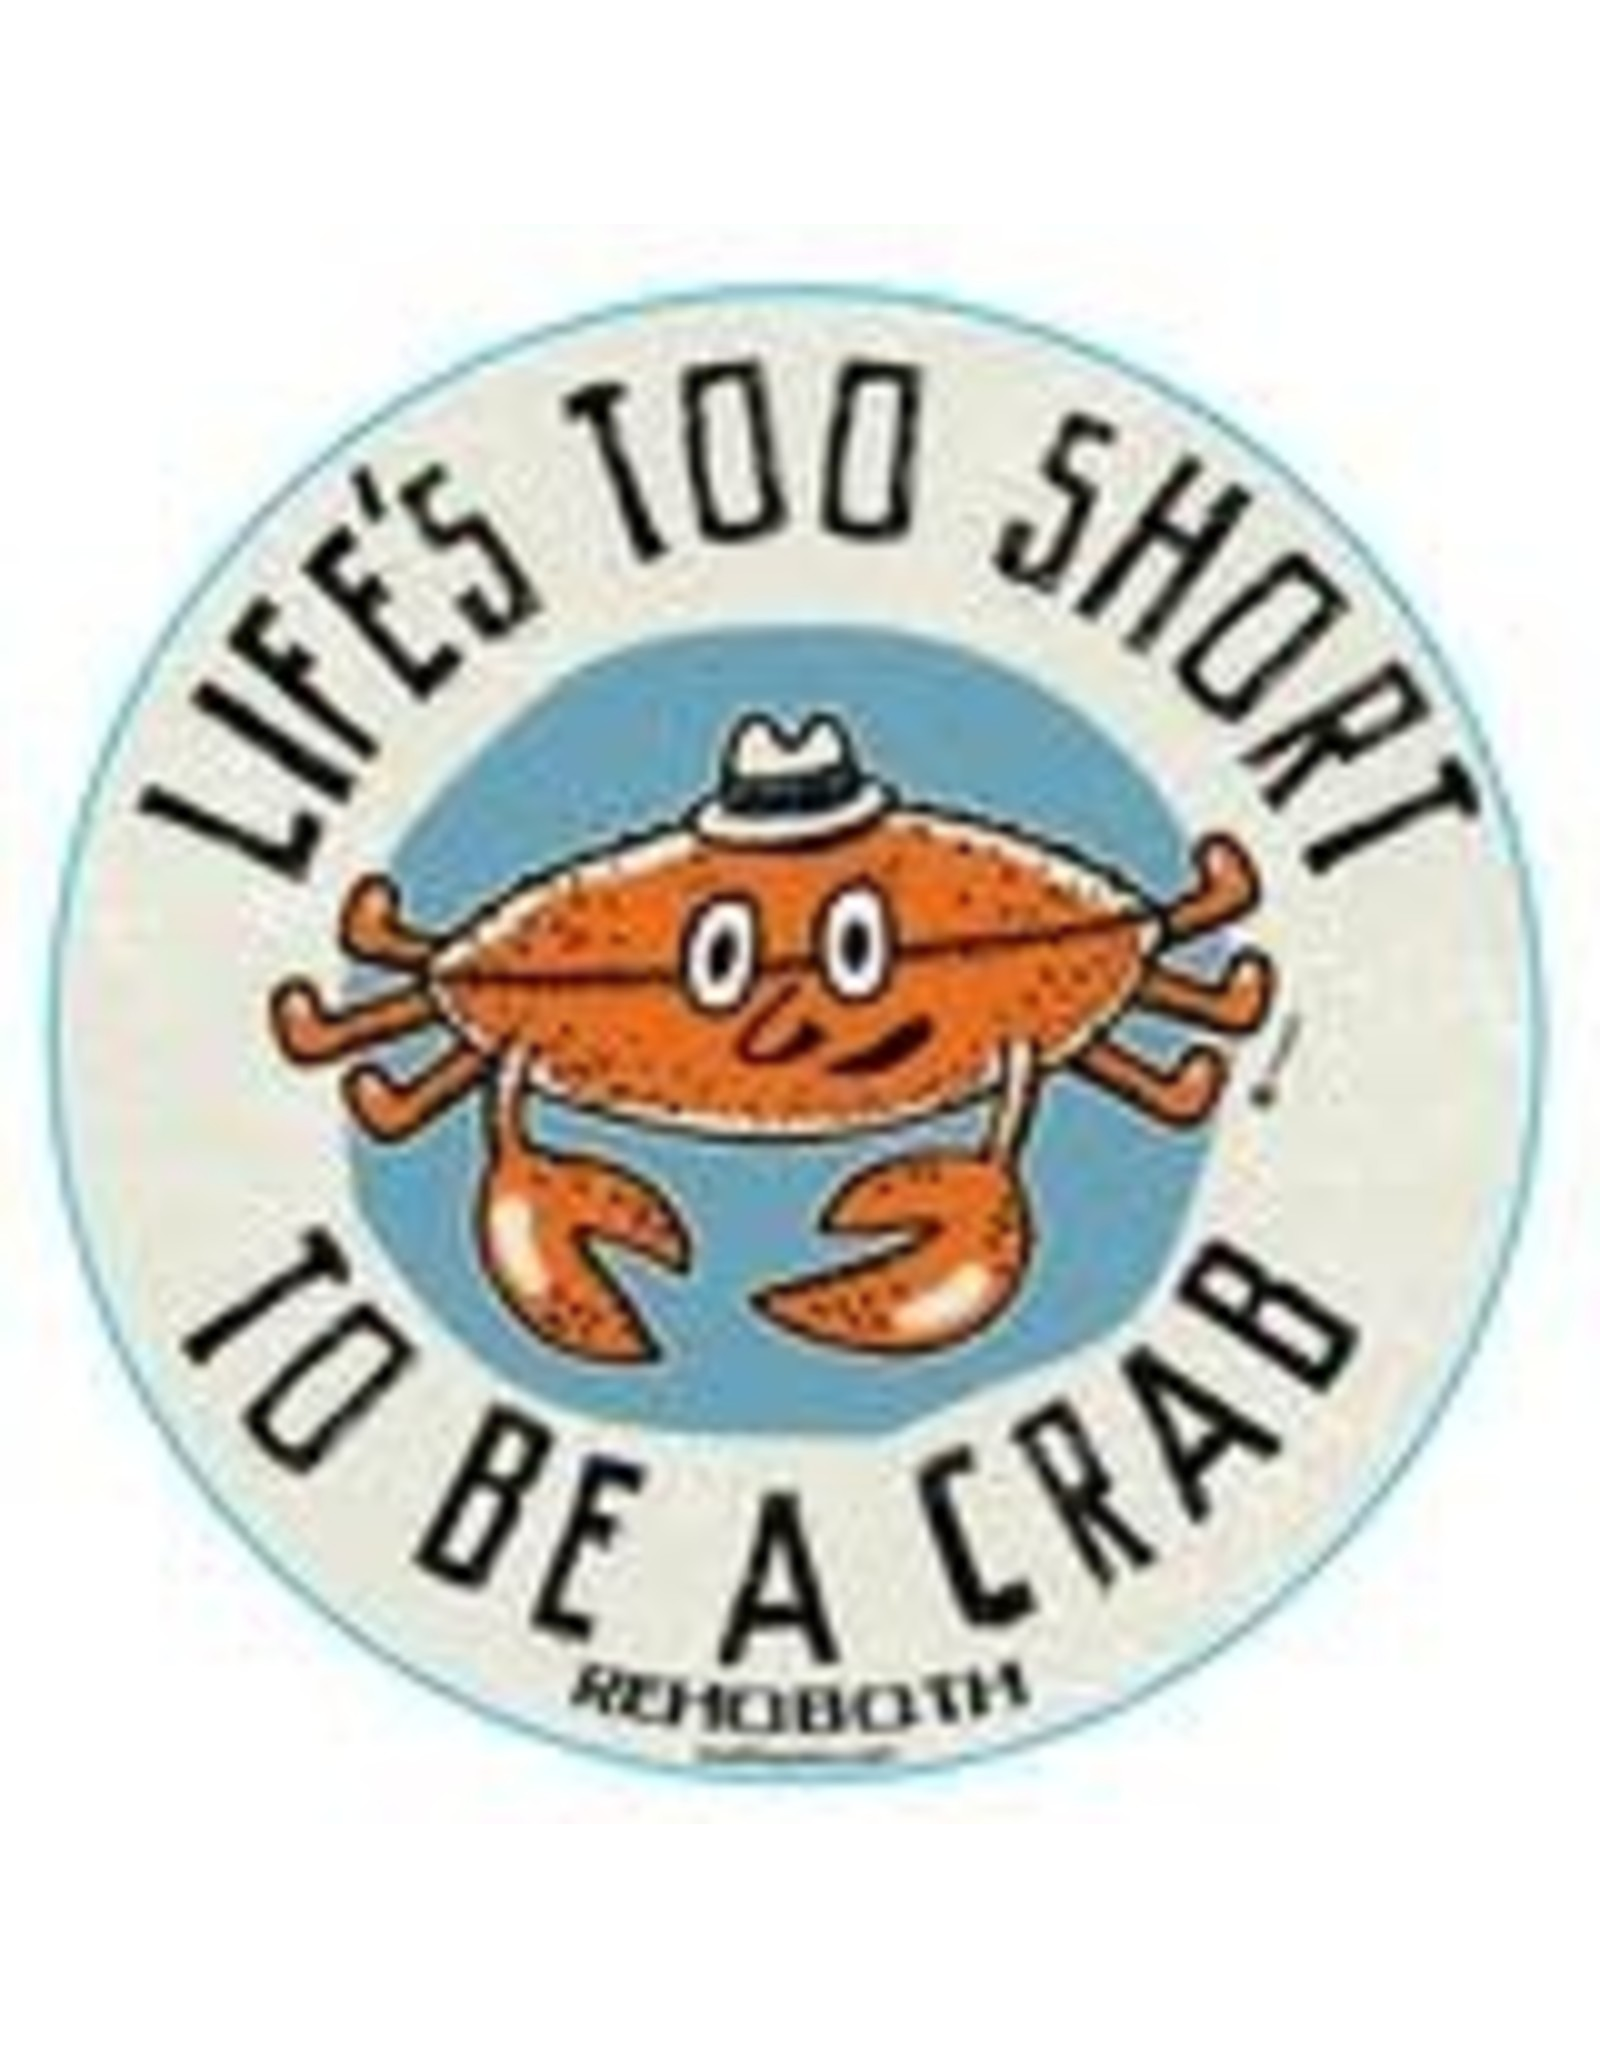 BLUE 84 BEACH STICKER LIFE'S TOO SHORT TO BE A CRAB